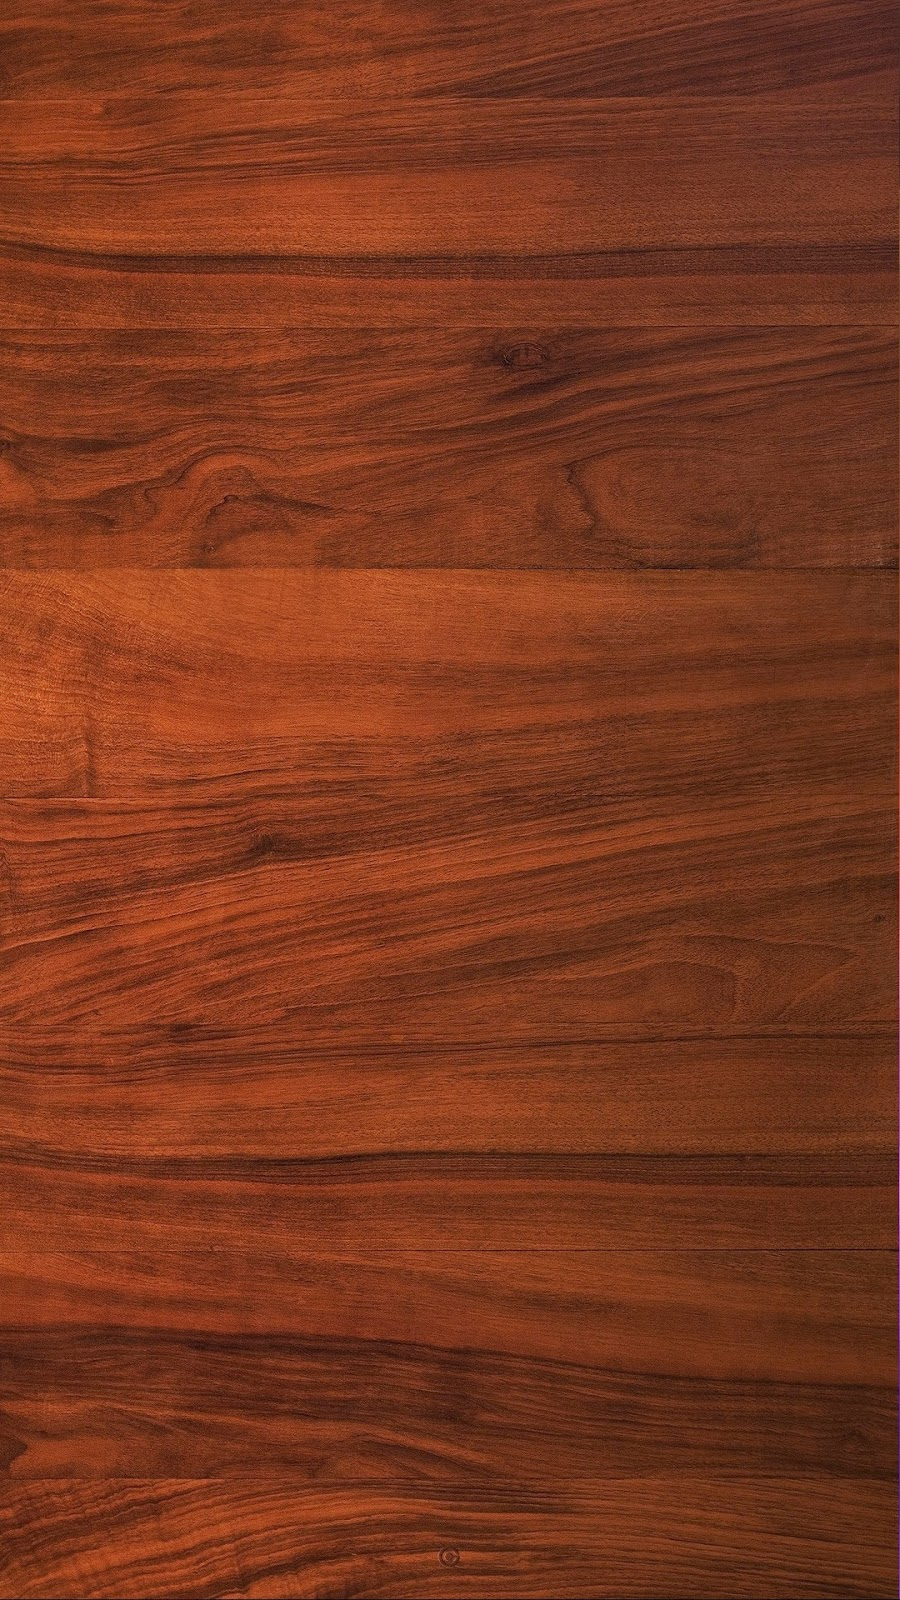 Beautiful Wood Texture Wallpaper For Iphone